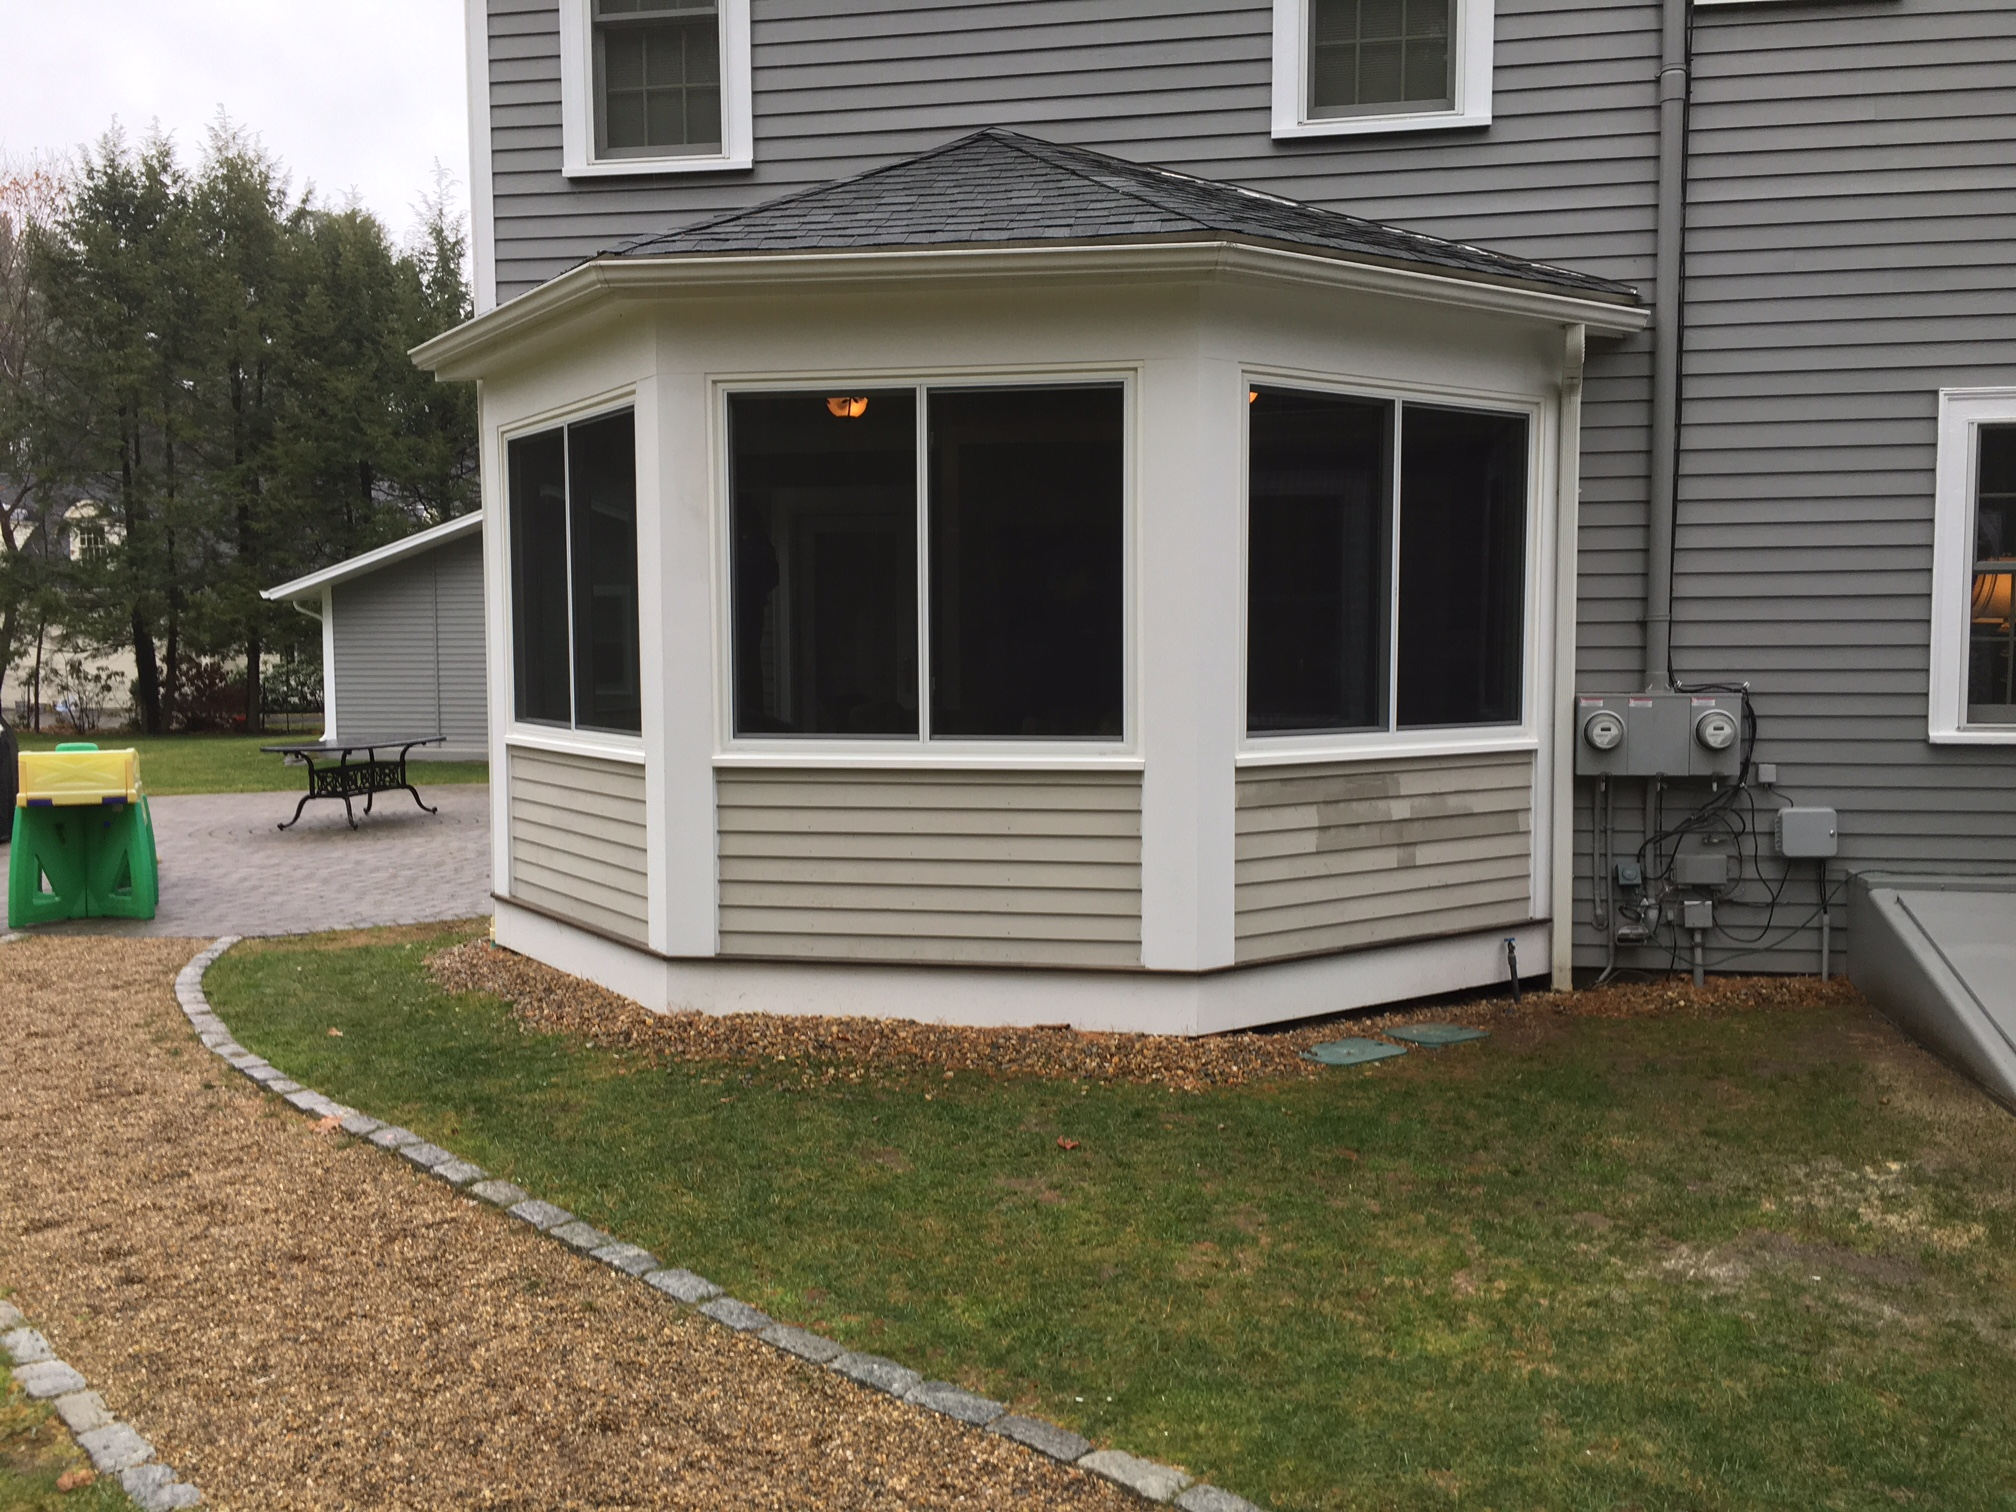 img improvements basking were new monk home enclosed conversion nj s wainscoting installed ridge by porch windows